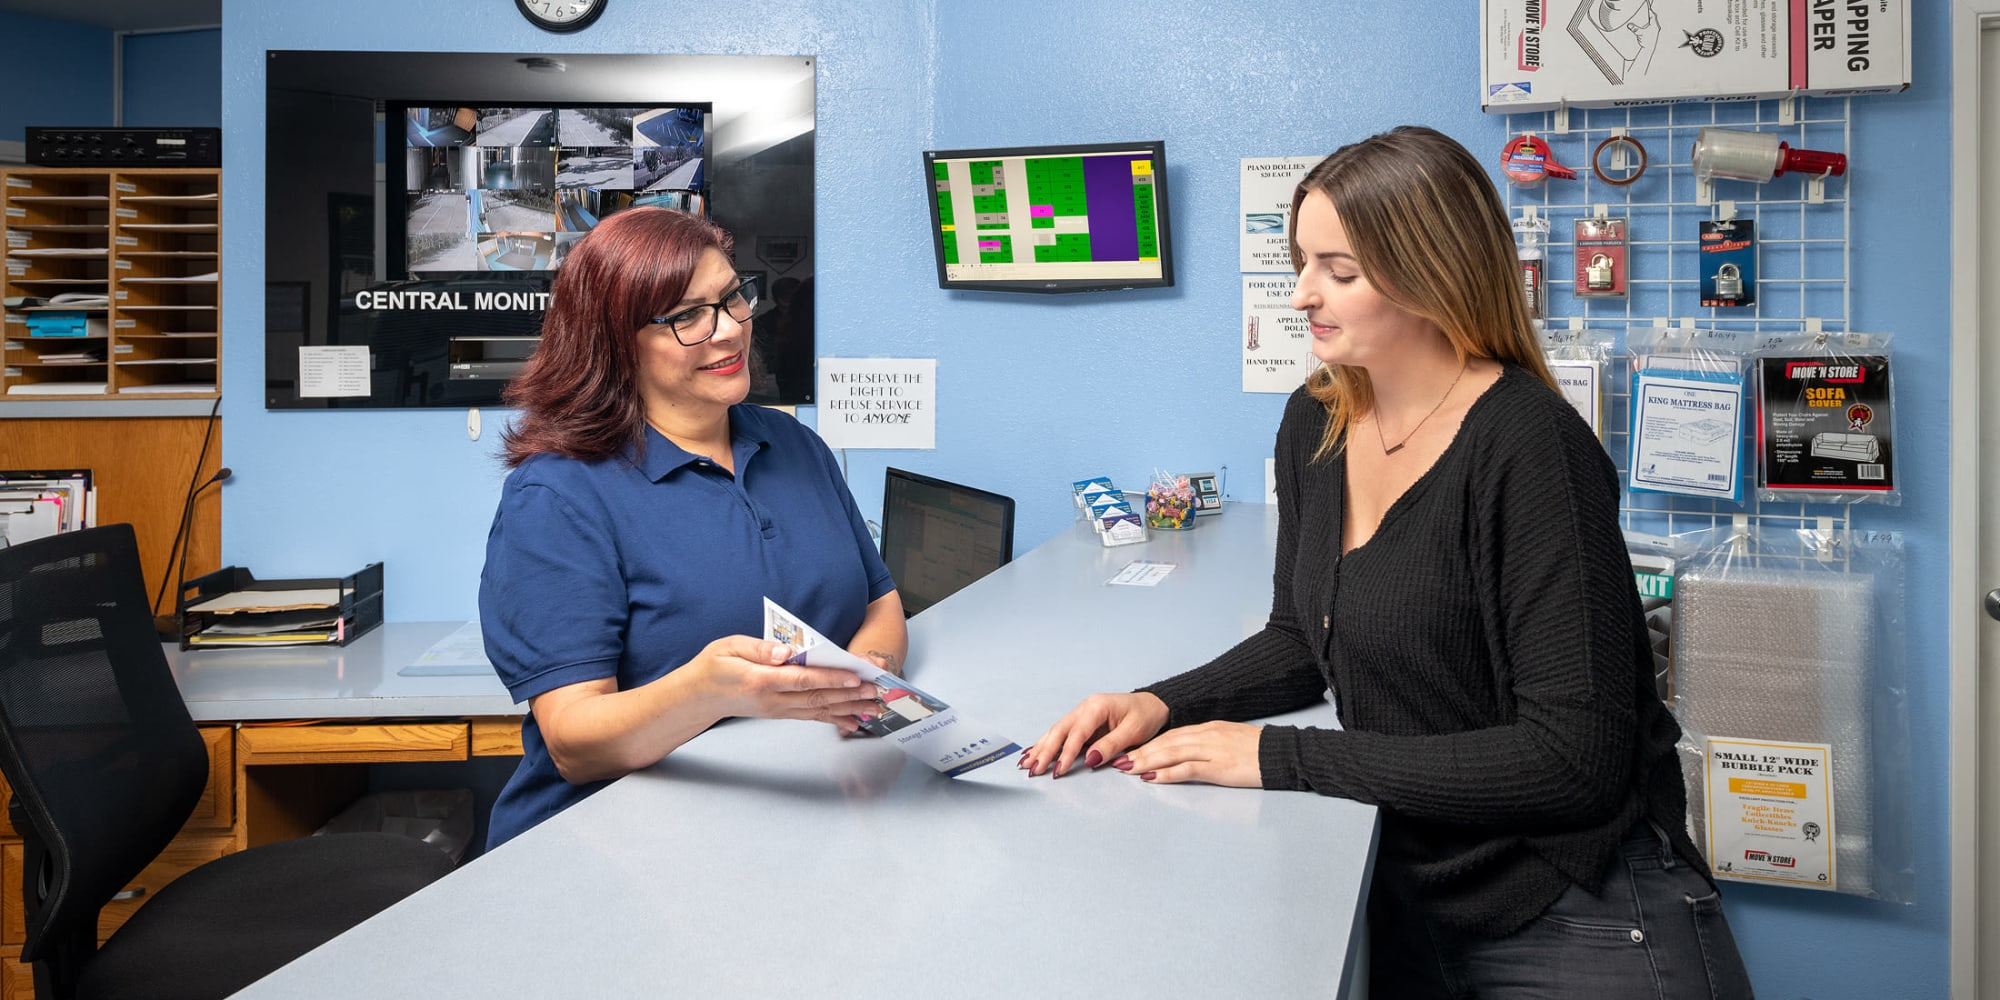 An employee and customer at Castro Valley Storage LLC in Castro Valley, California